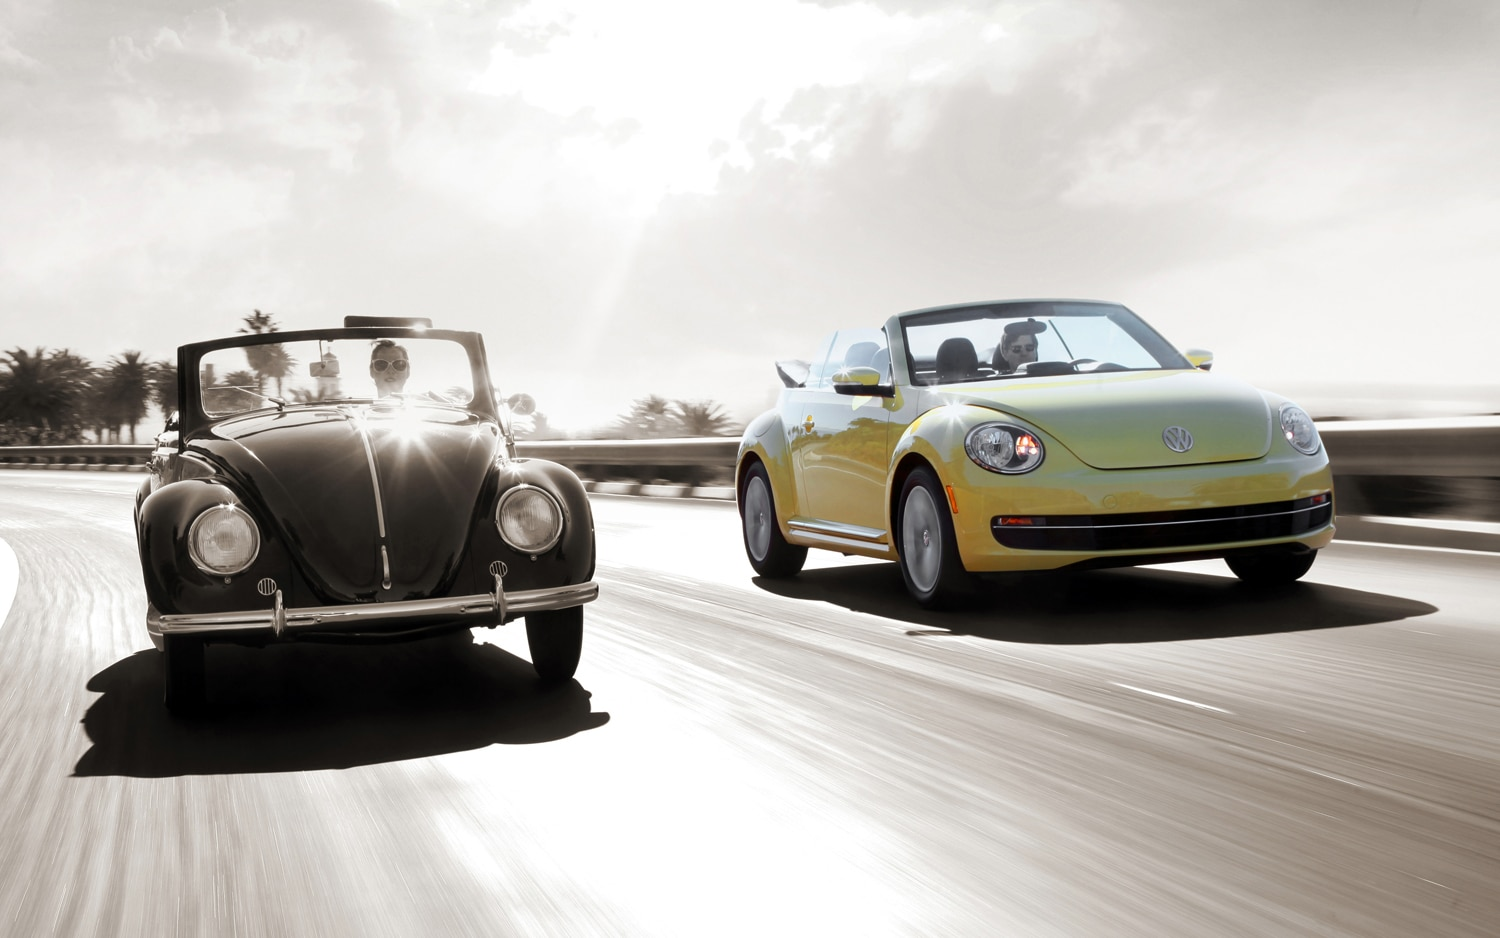 2013 Volkswagen Beetle Convertible And 1949 Hebmueller Cabriolet Front View1